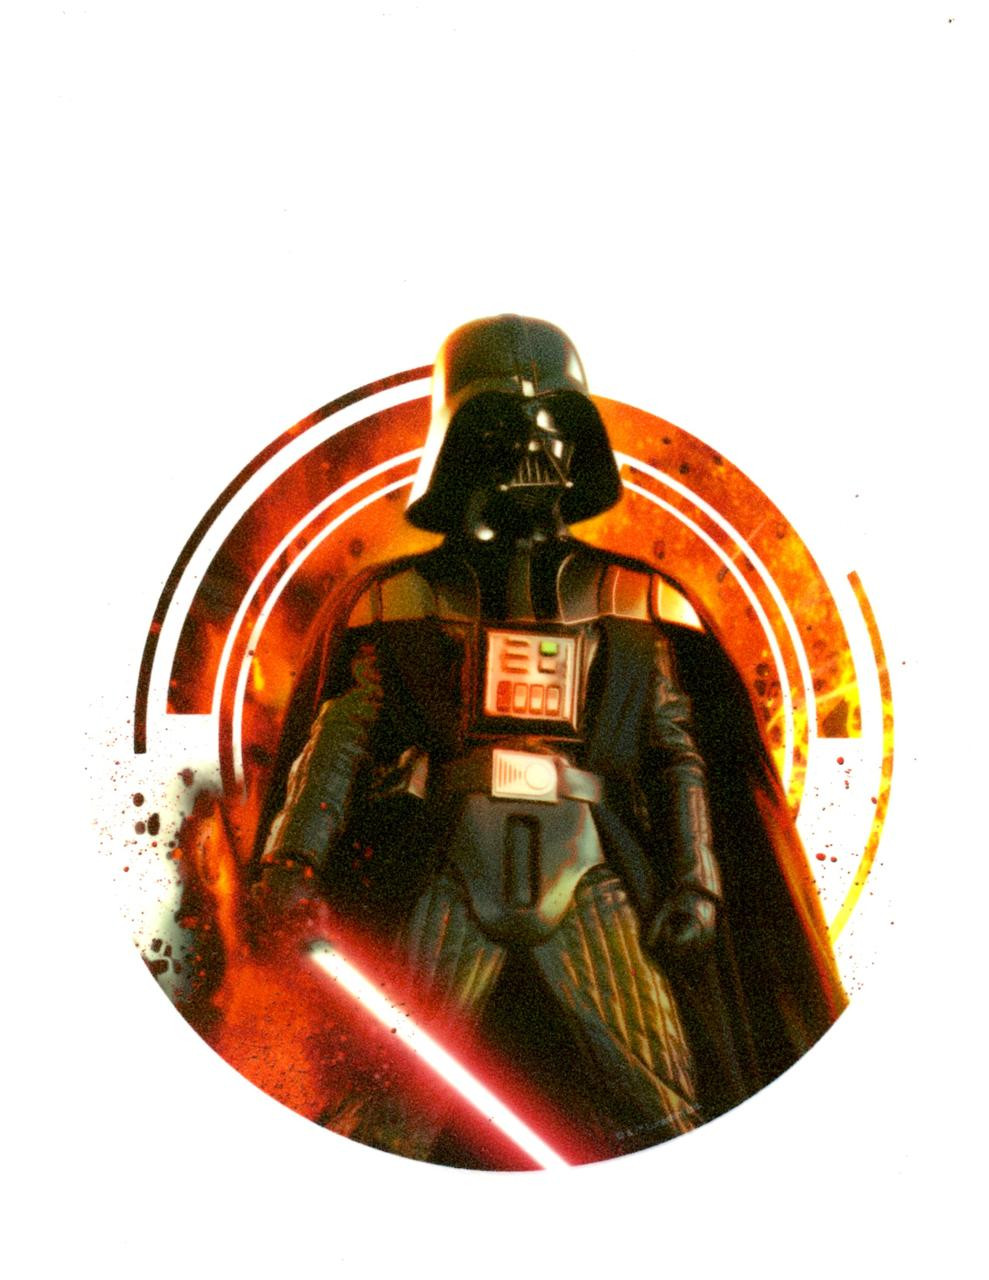 Star Wars Darth Vader Edible Icing Image Ebay